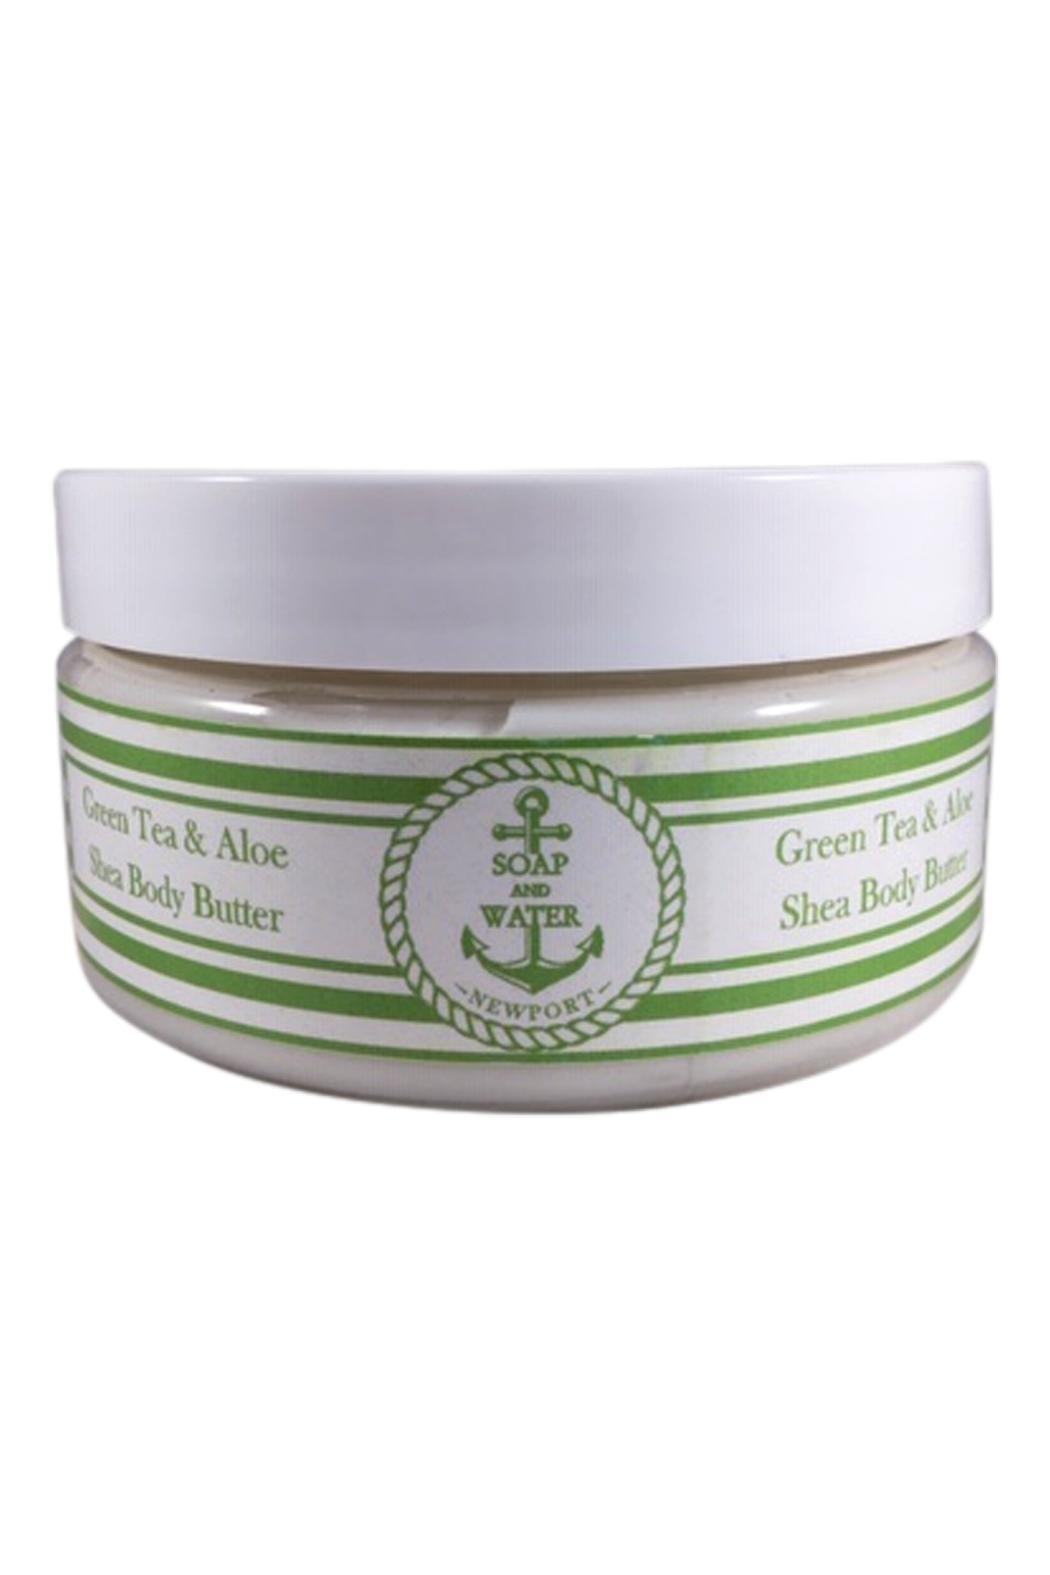 Soap and Water Newport GREEN TEA AND ALOE BODY BUTTER - Main Image